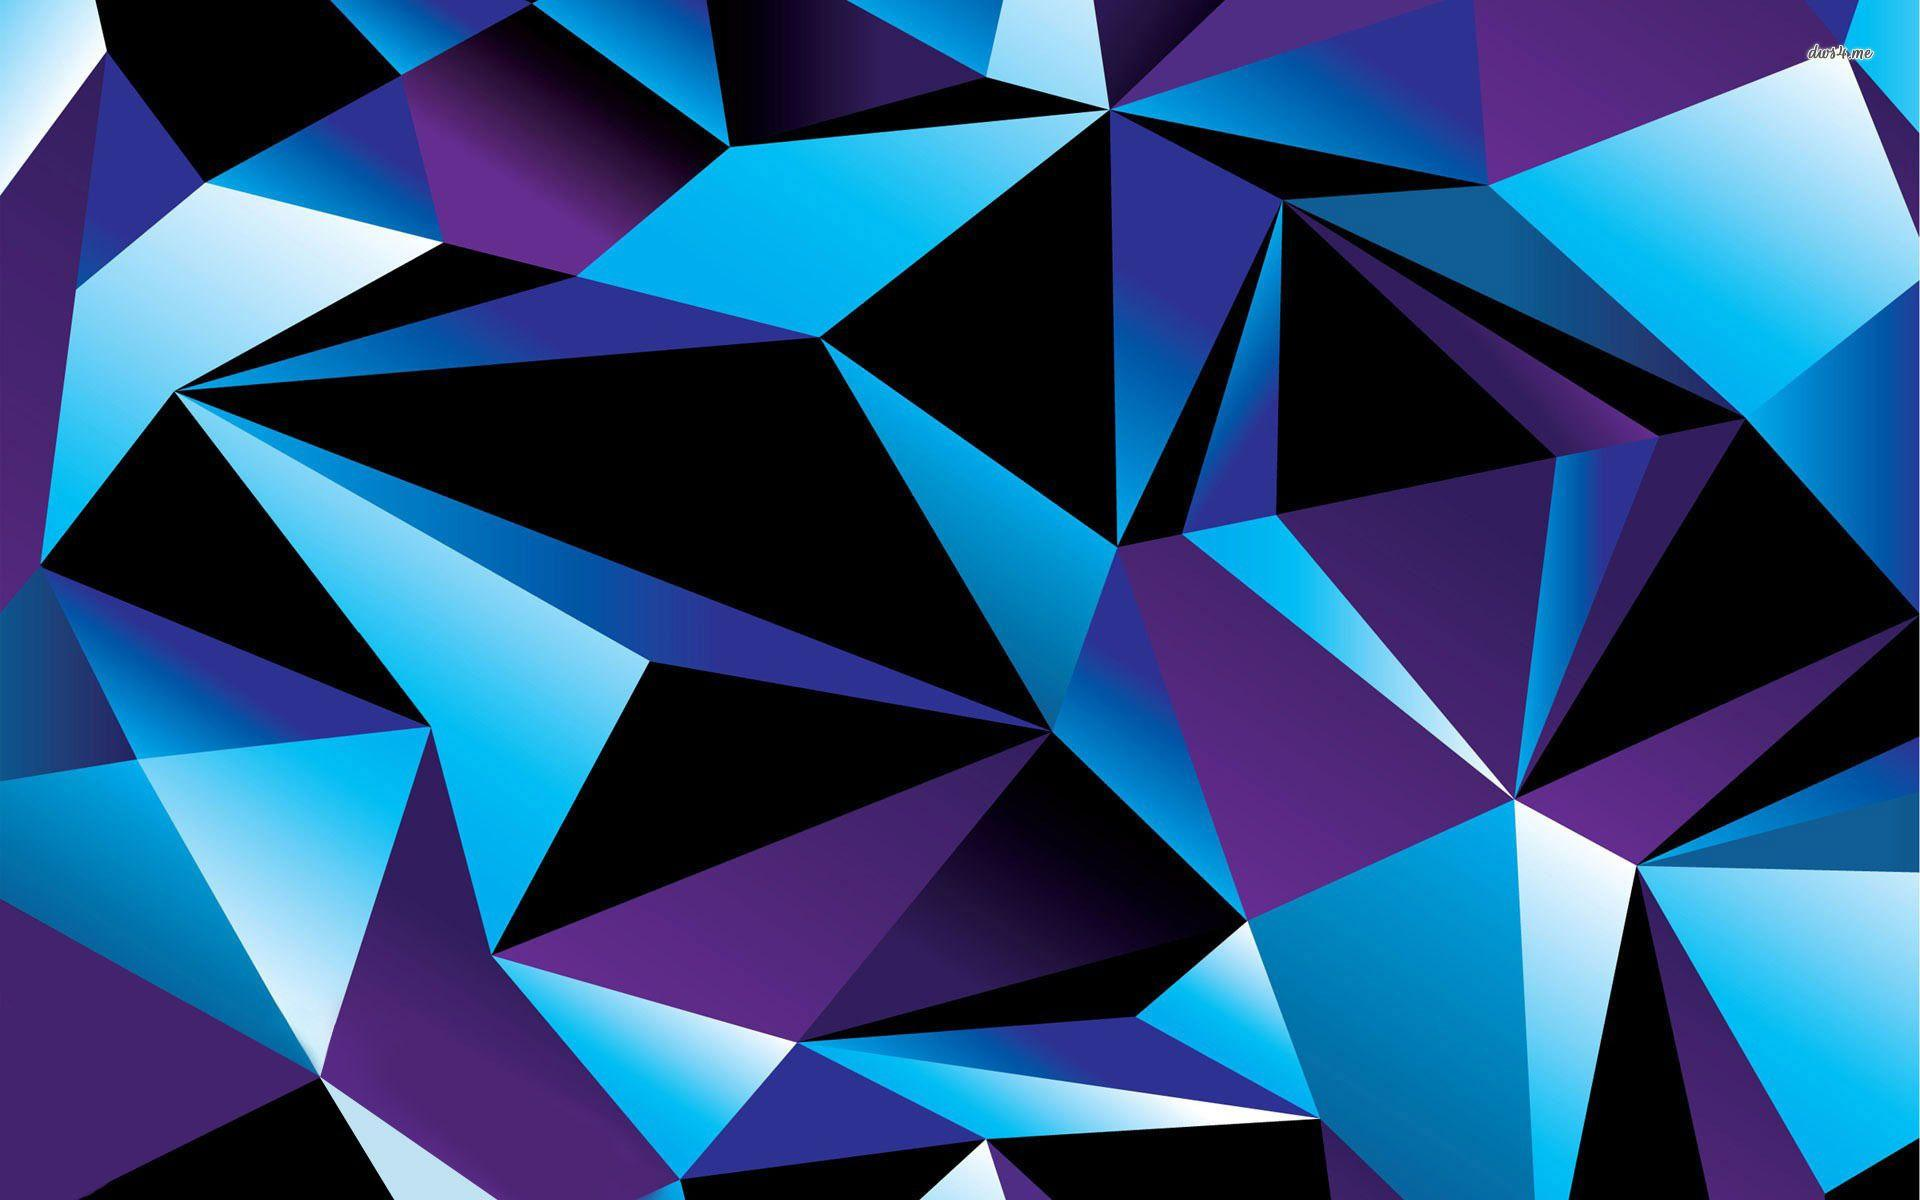 High Res Polygon Wallpapers #498278 Lucas Surtin 06.11.15